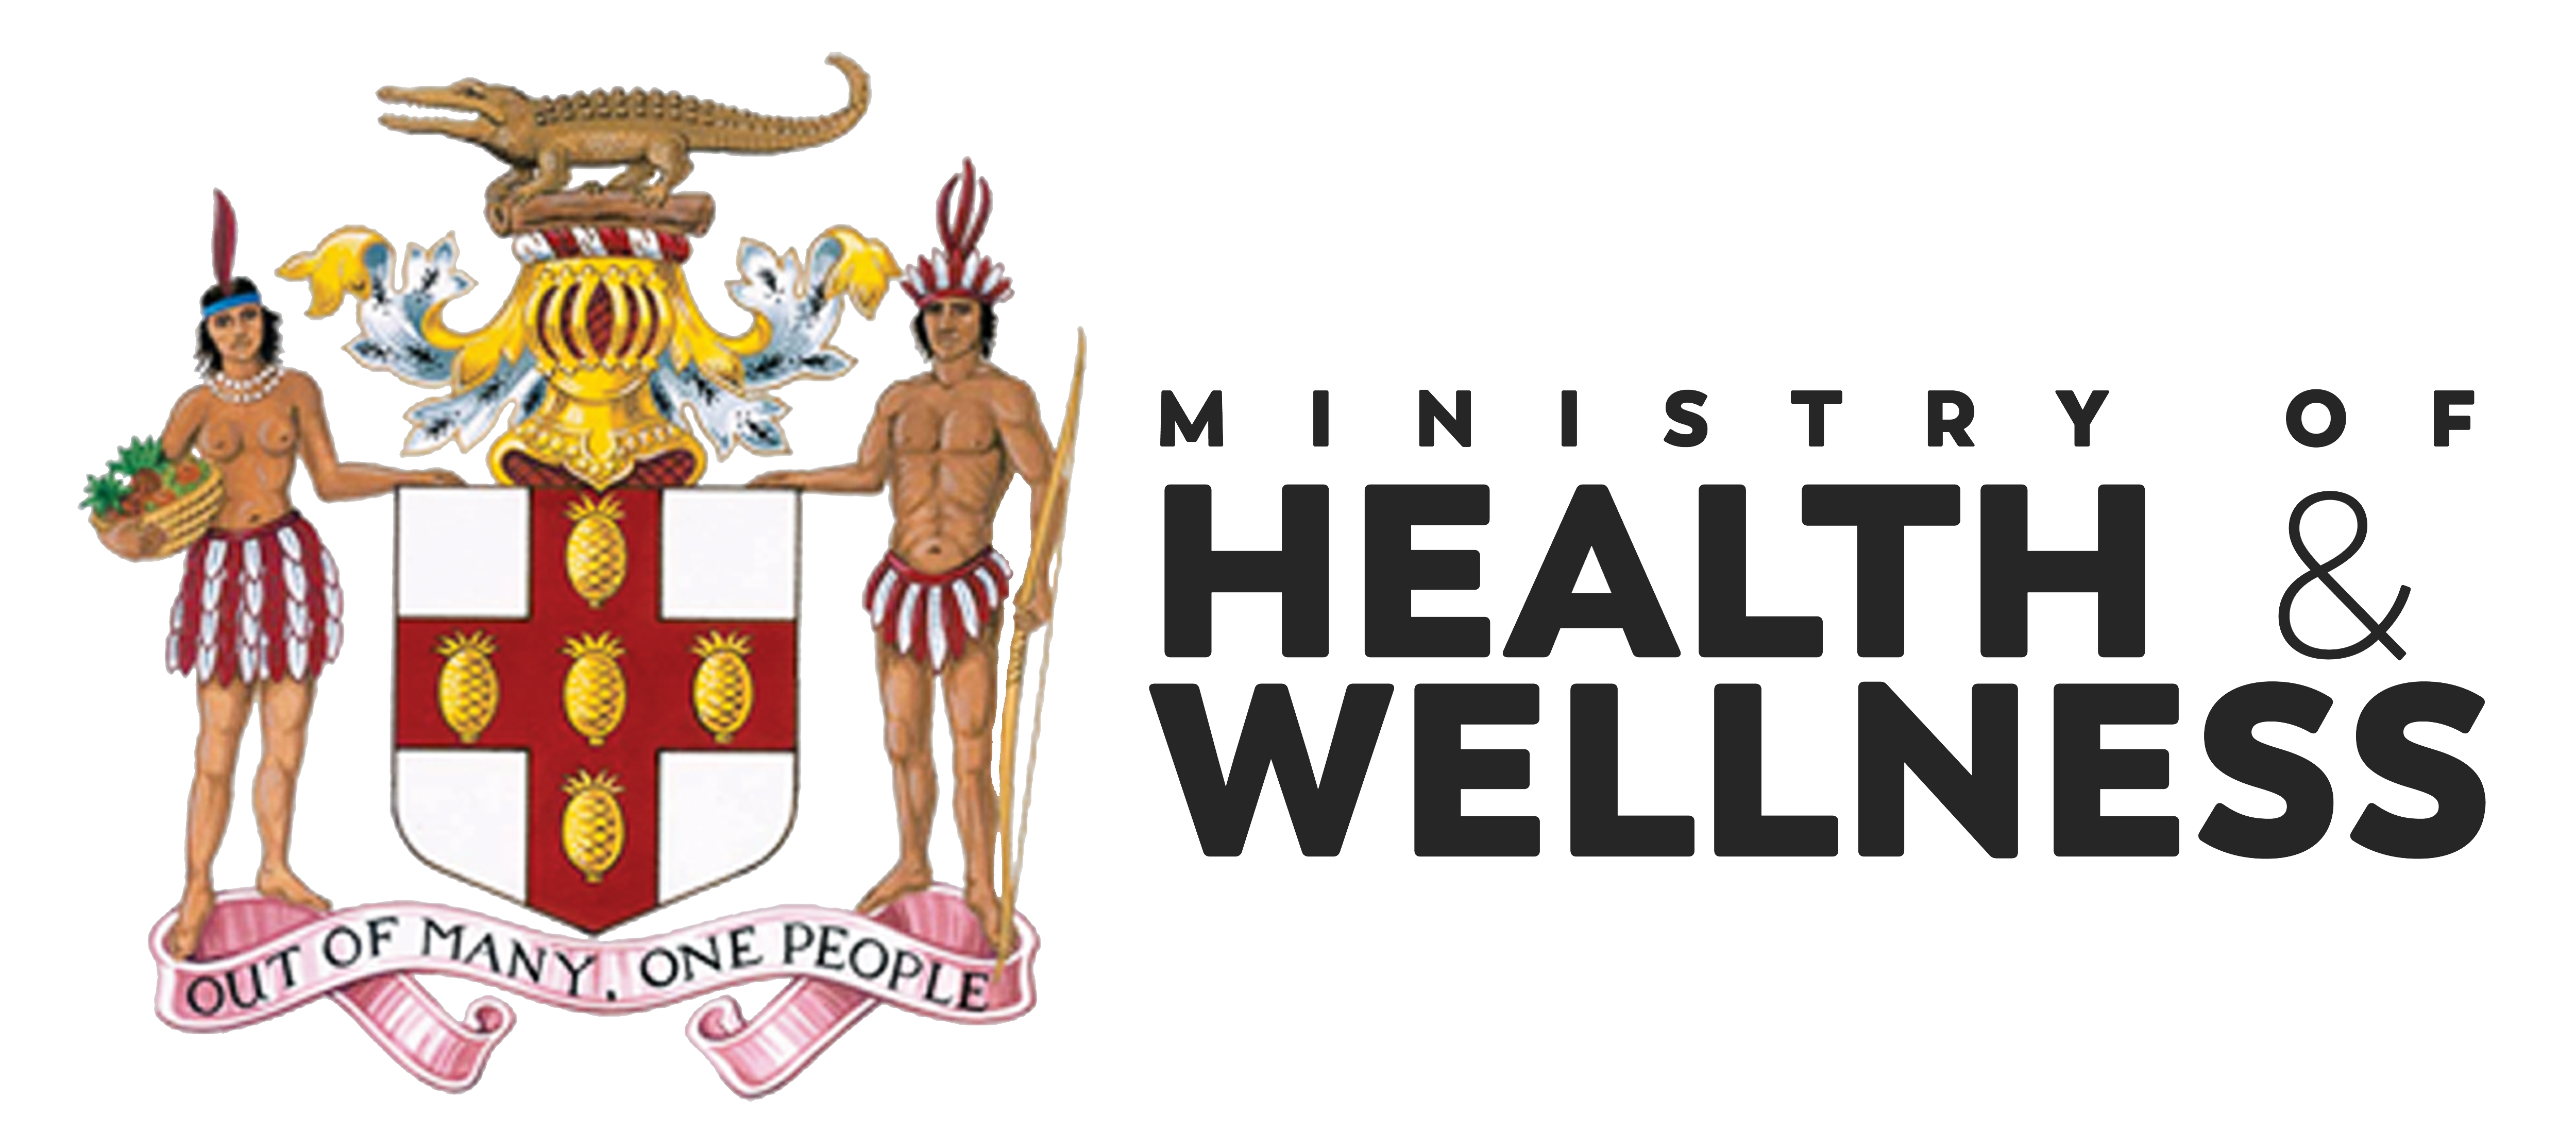 Ministry of Health & Wellness